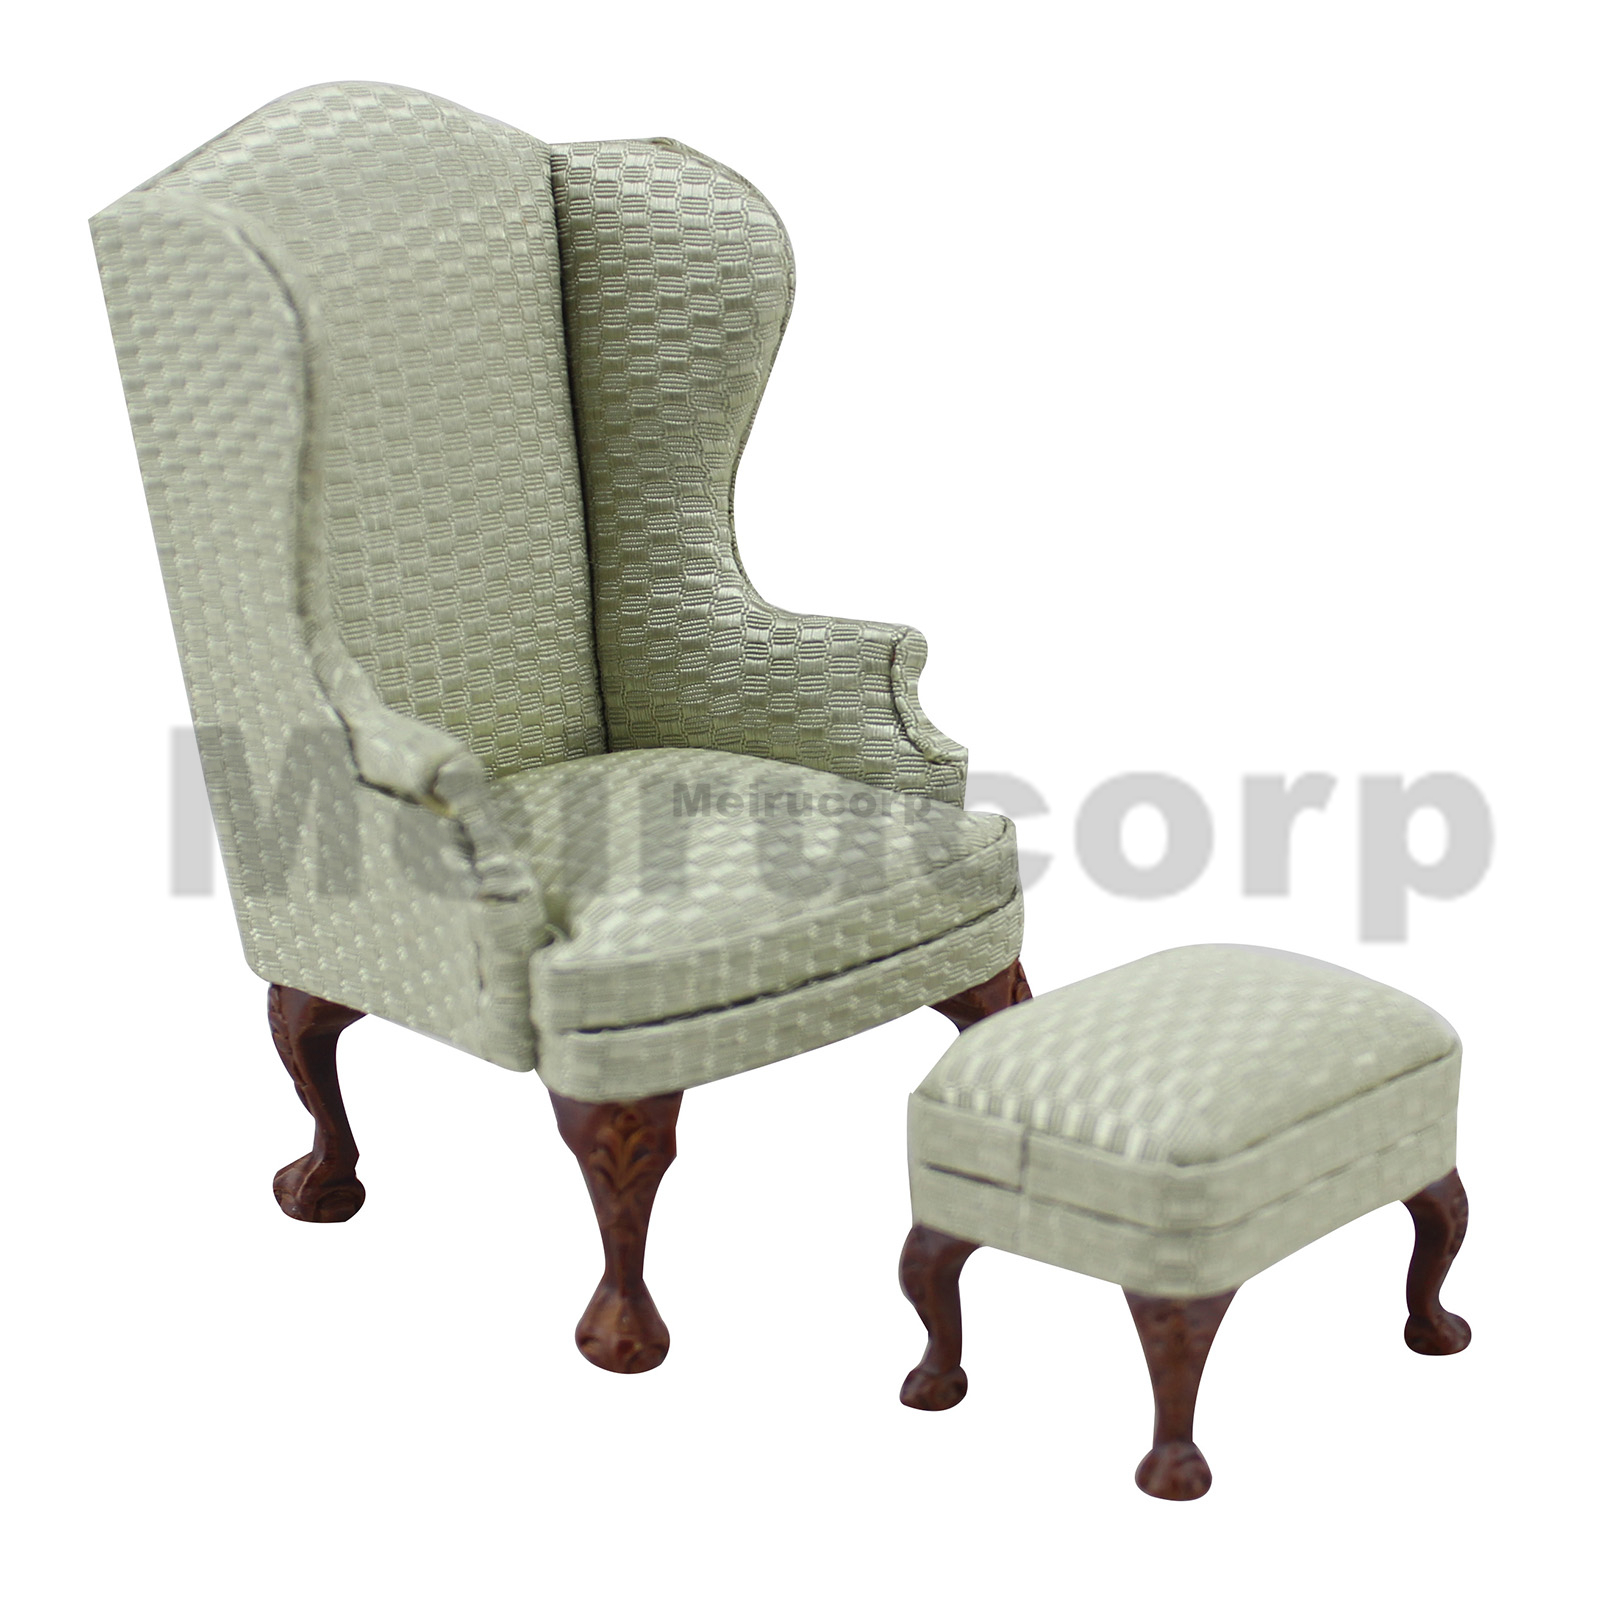 Dollhouse 1:12 Scale Miniature Wood Crafts Furniture  Elegant Fabric Chair And Ottoman